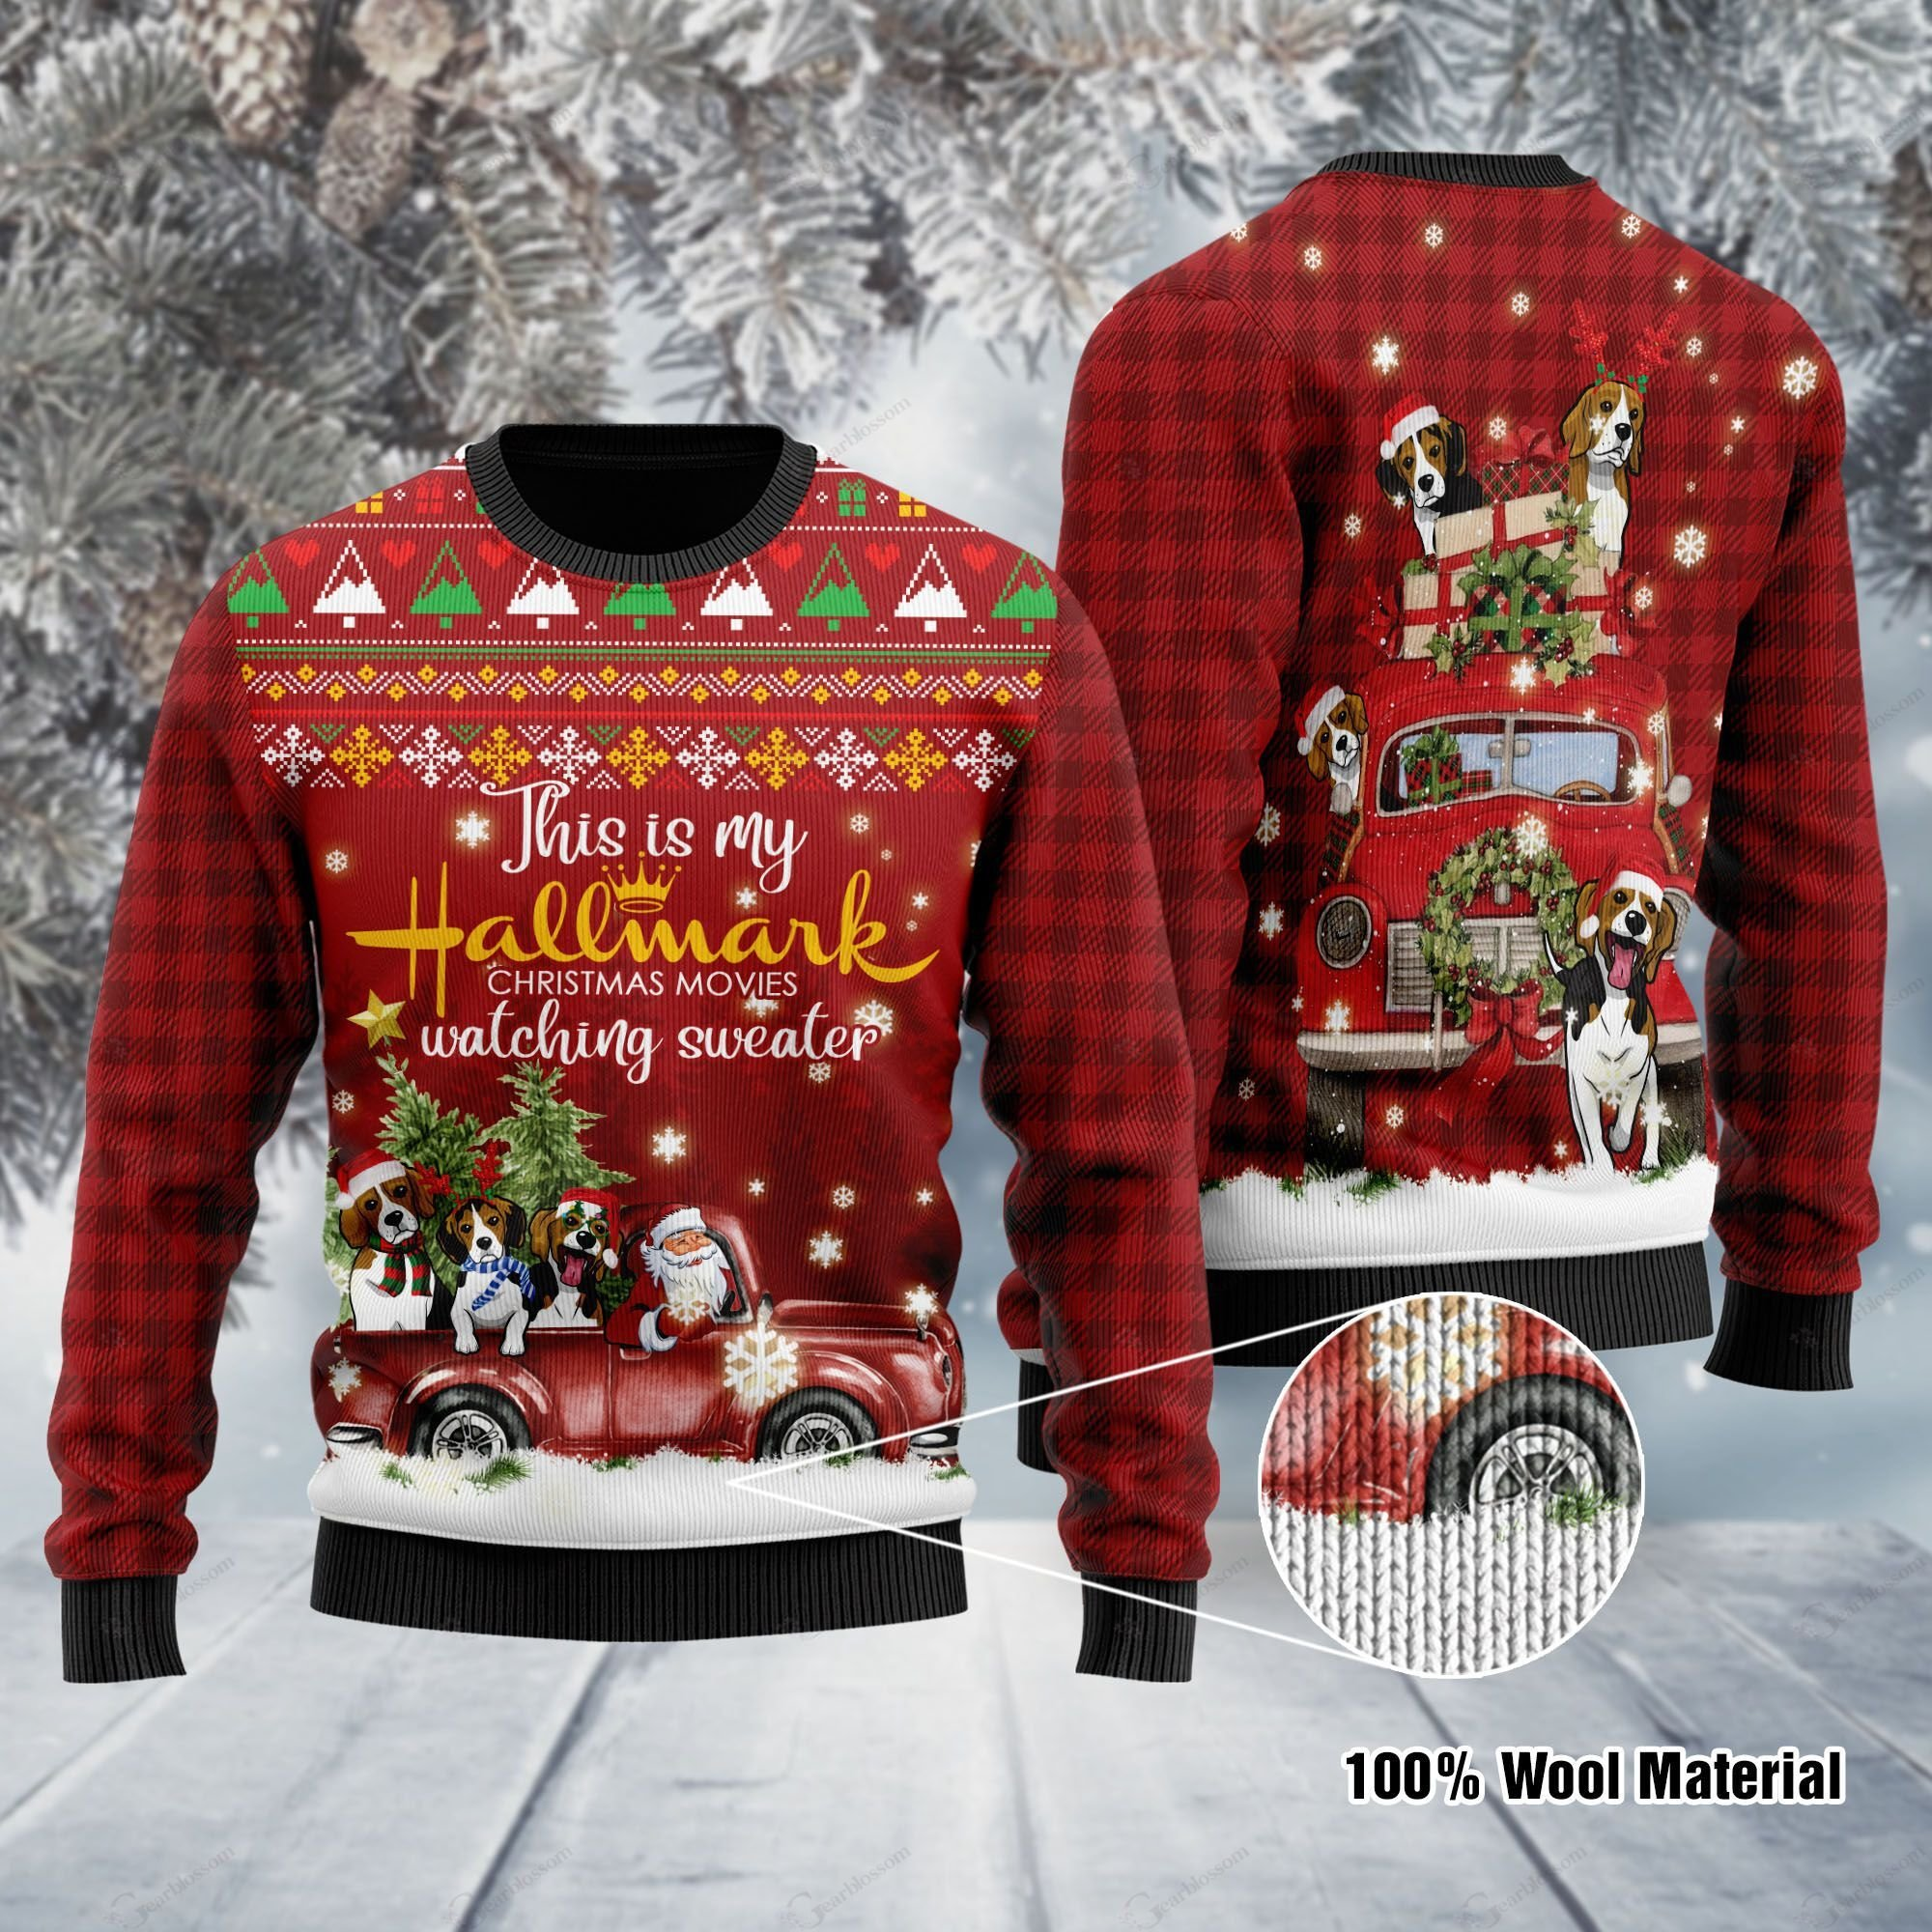 Beagle And Santa Claus With Sayings This Is My Hallmark Christmas Movie Watching Ugly Wool Sweater For Beagle And Hallmark Lover Ugly Wool Sweater